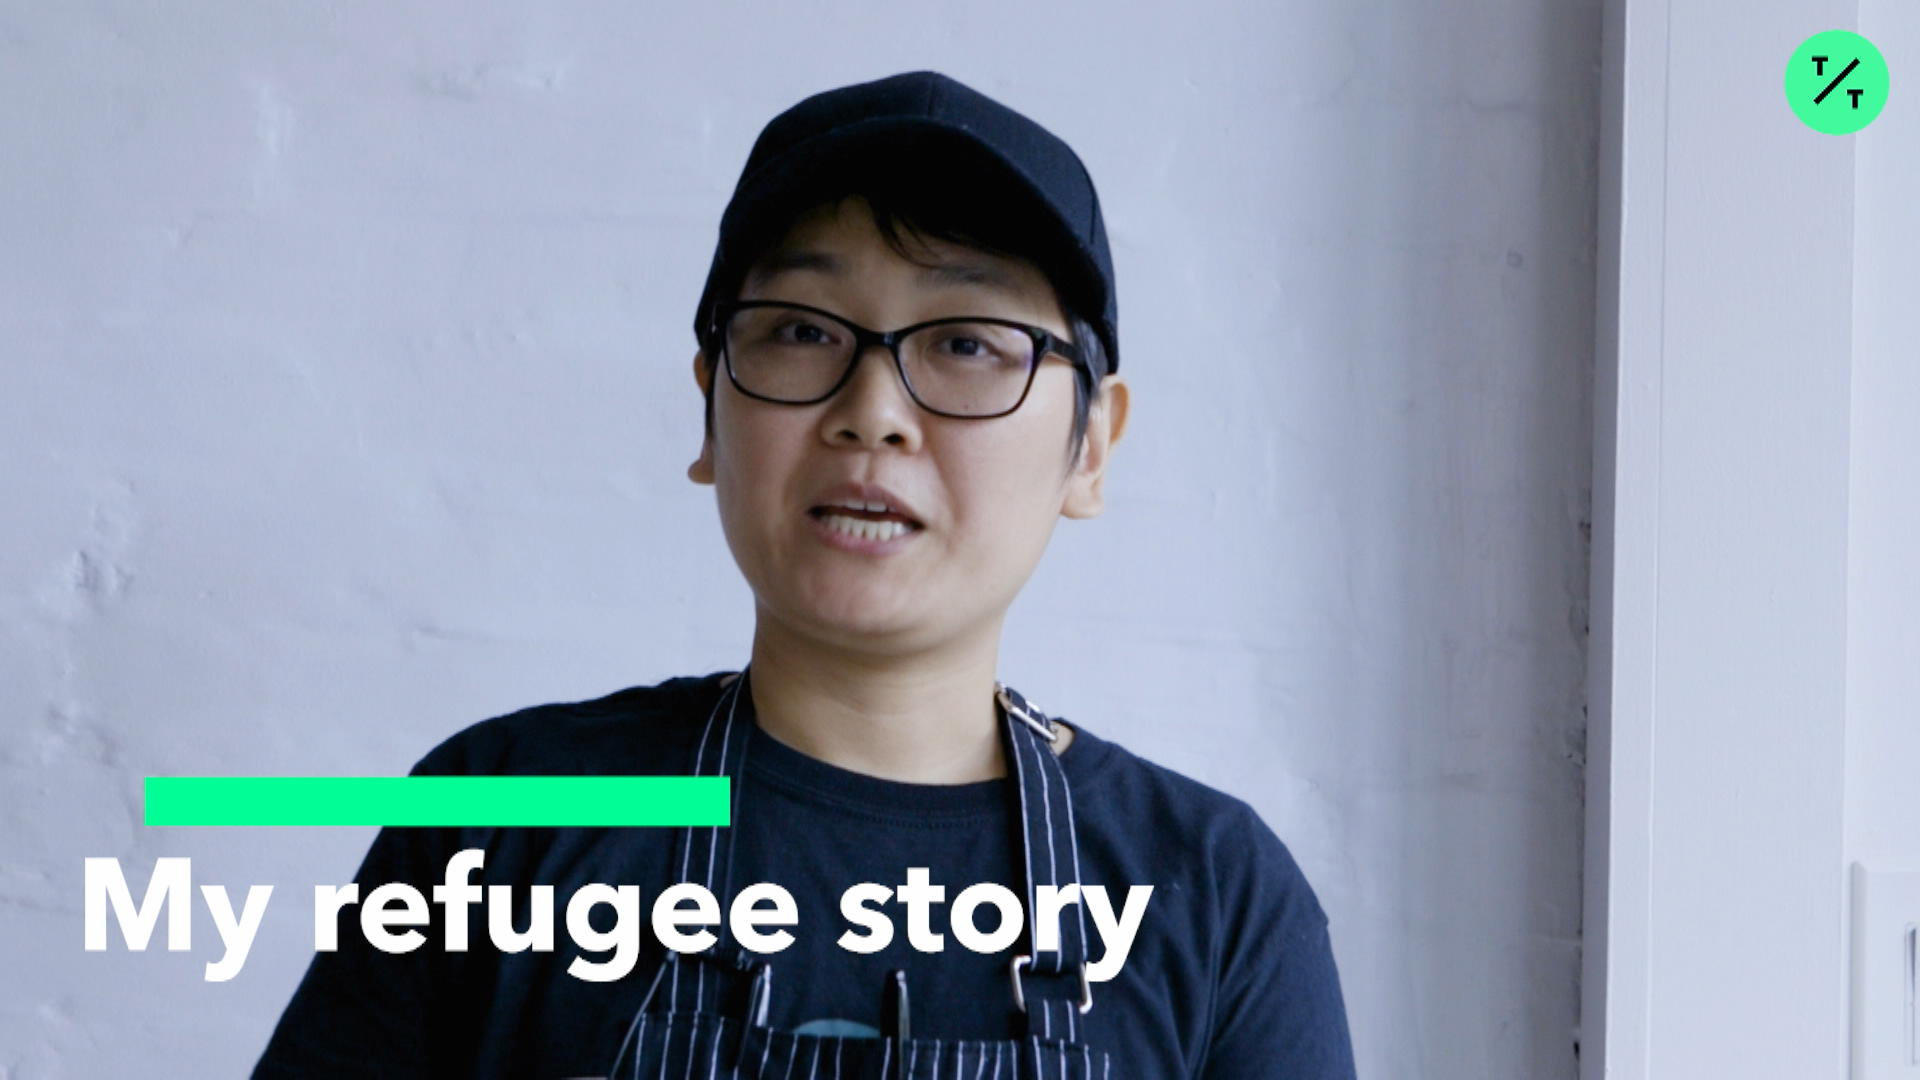 This NYC Restaurant Employs Refugees